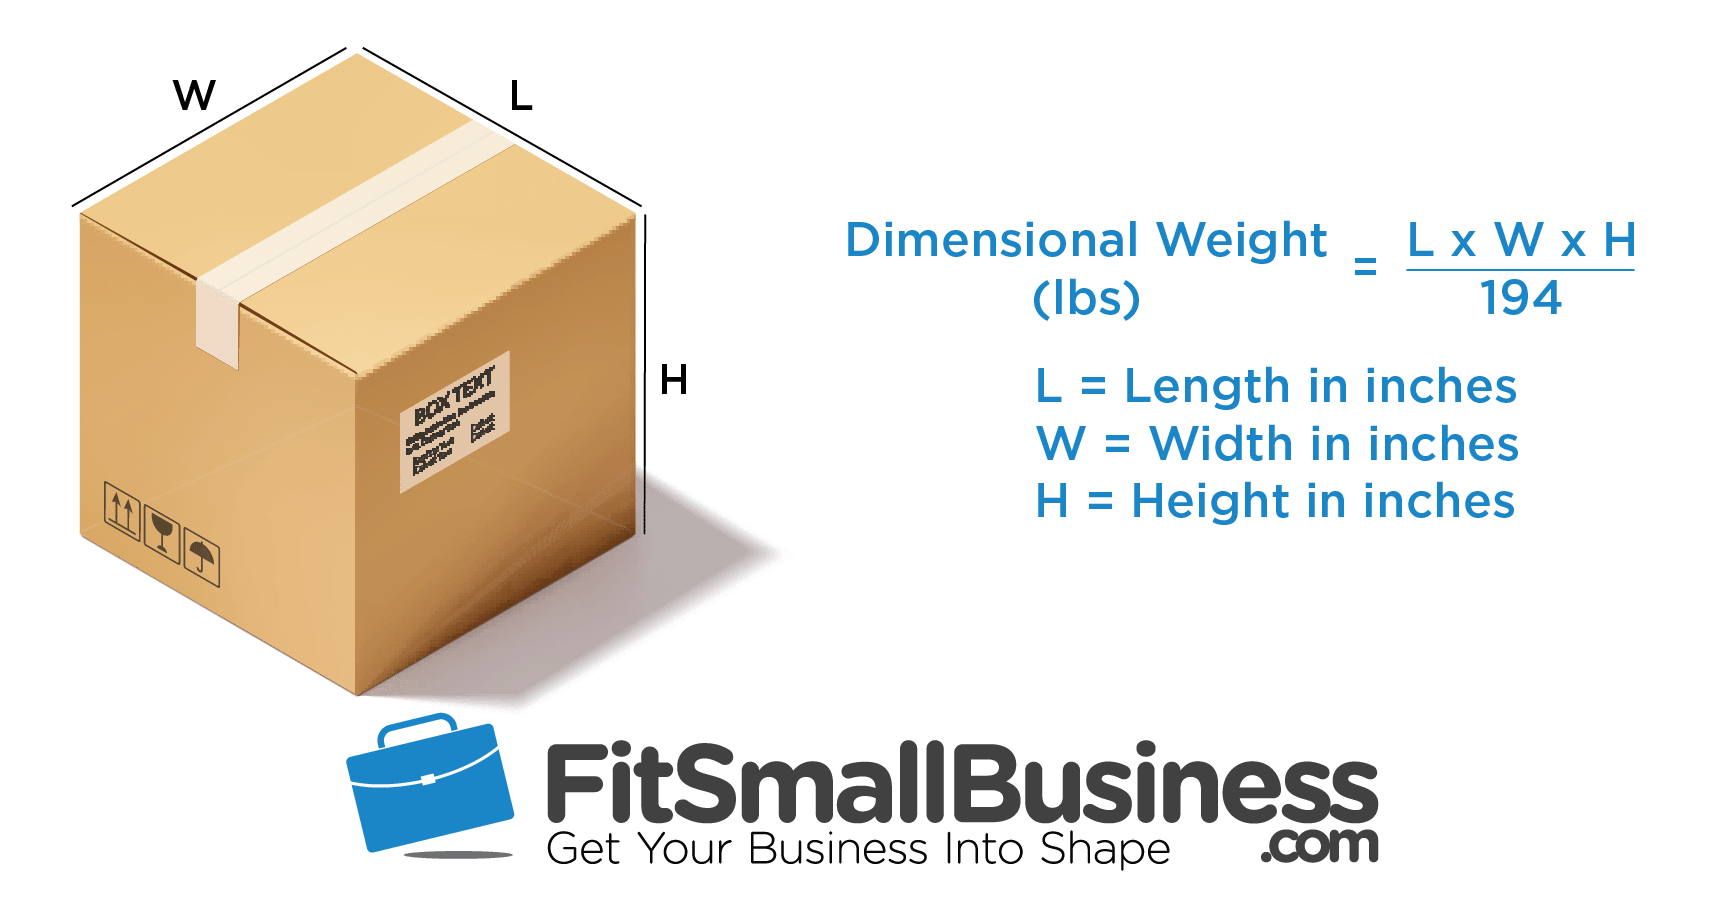 Dimensional Weight Calculator - USPS